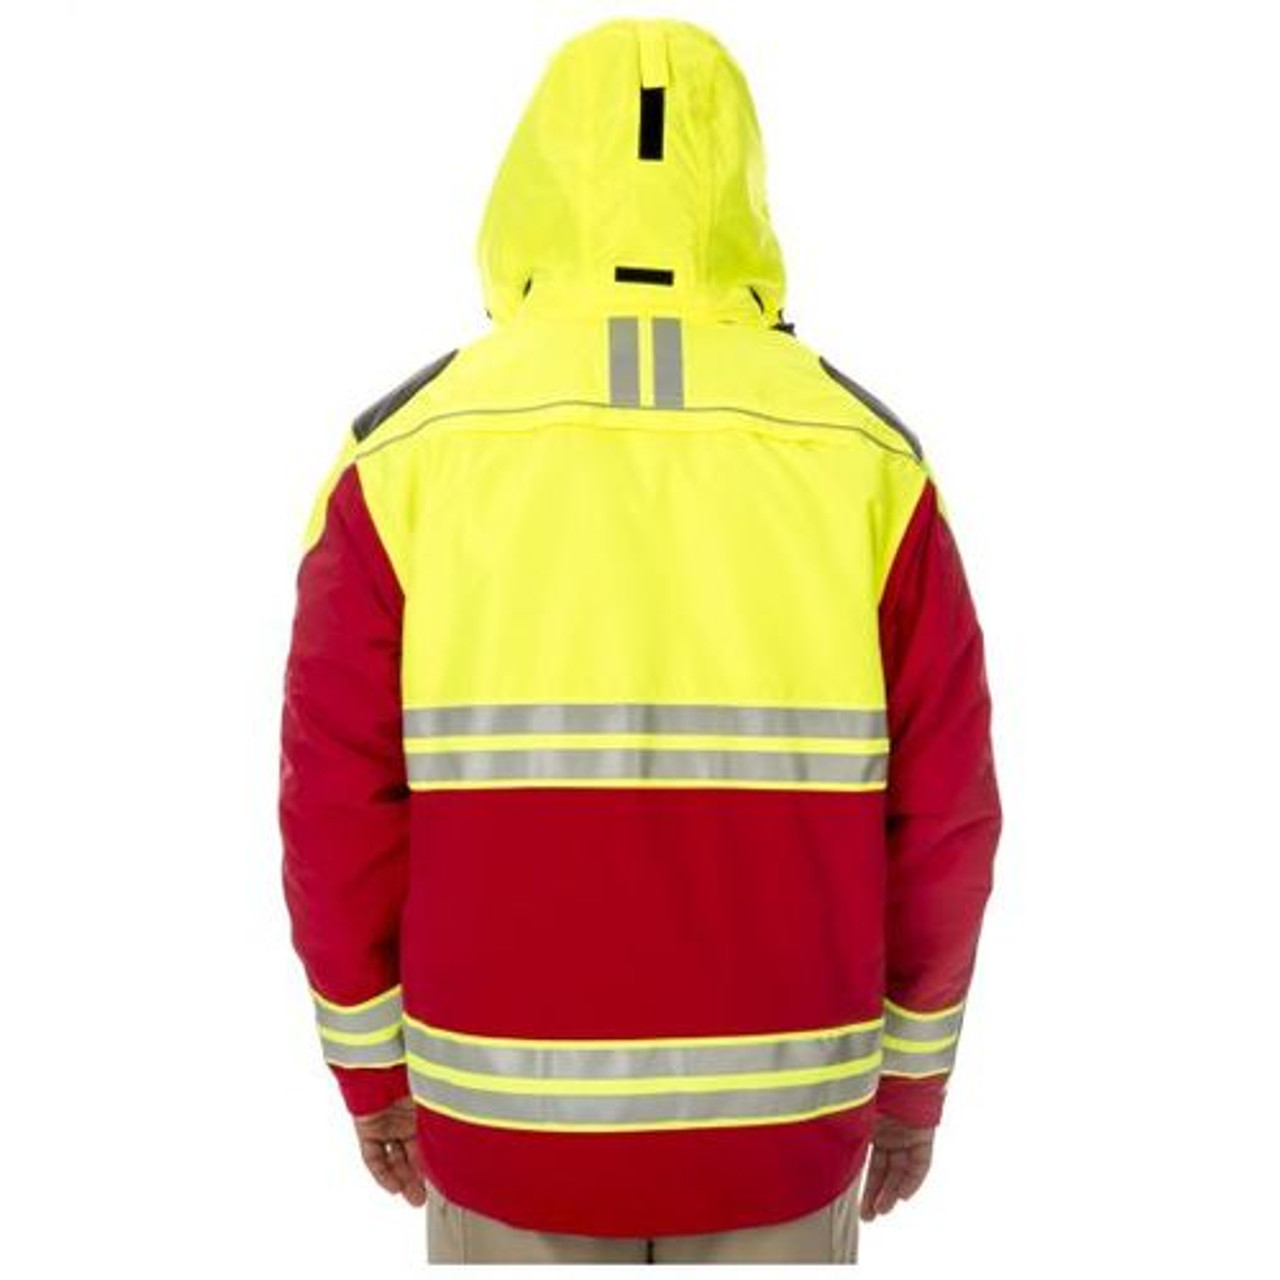 5.11 Tactical 48073 Responder High Visibility Parka, Uniform, Reflective, Waterproof, Water Resistant, Adjustable Cuffs, 2 Chest Pockets, available in Range Red, Royal Blue, and Dark Navy Blue